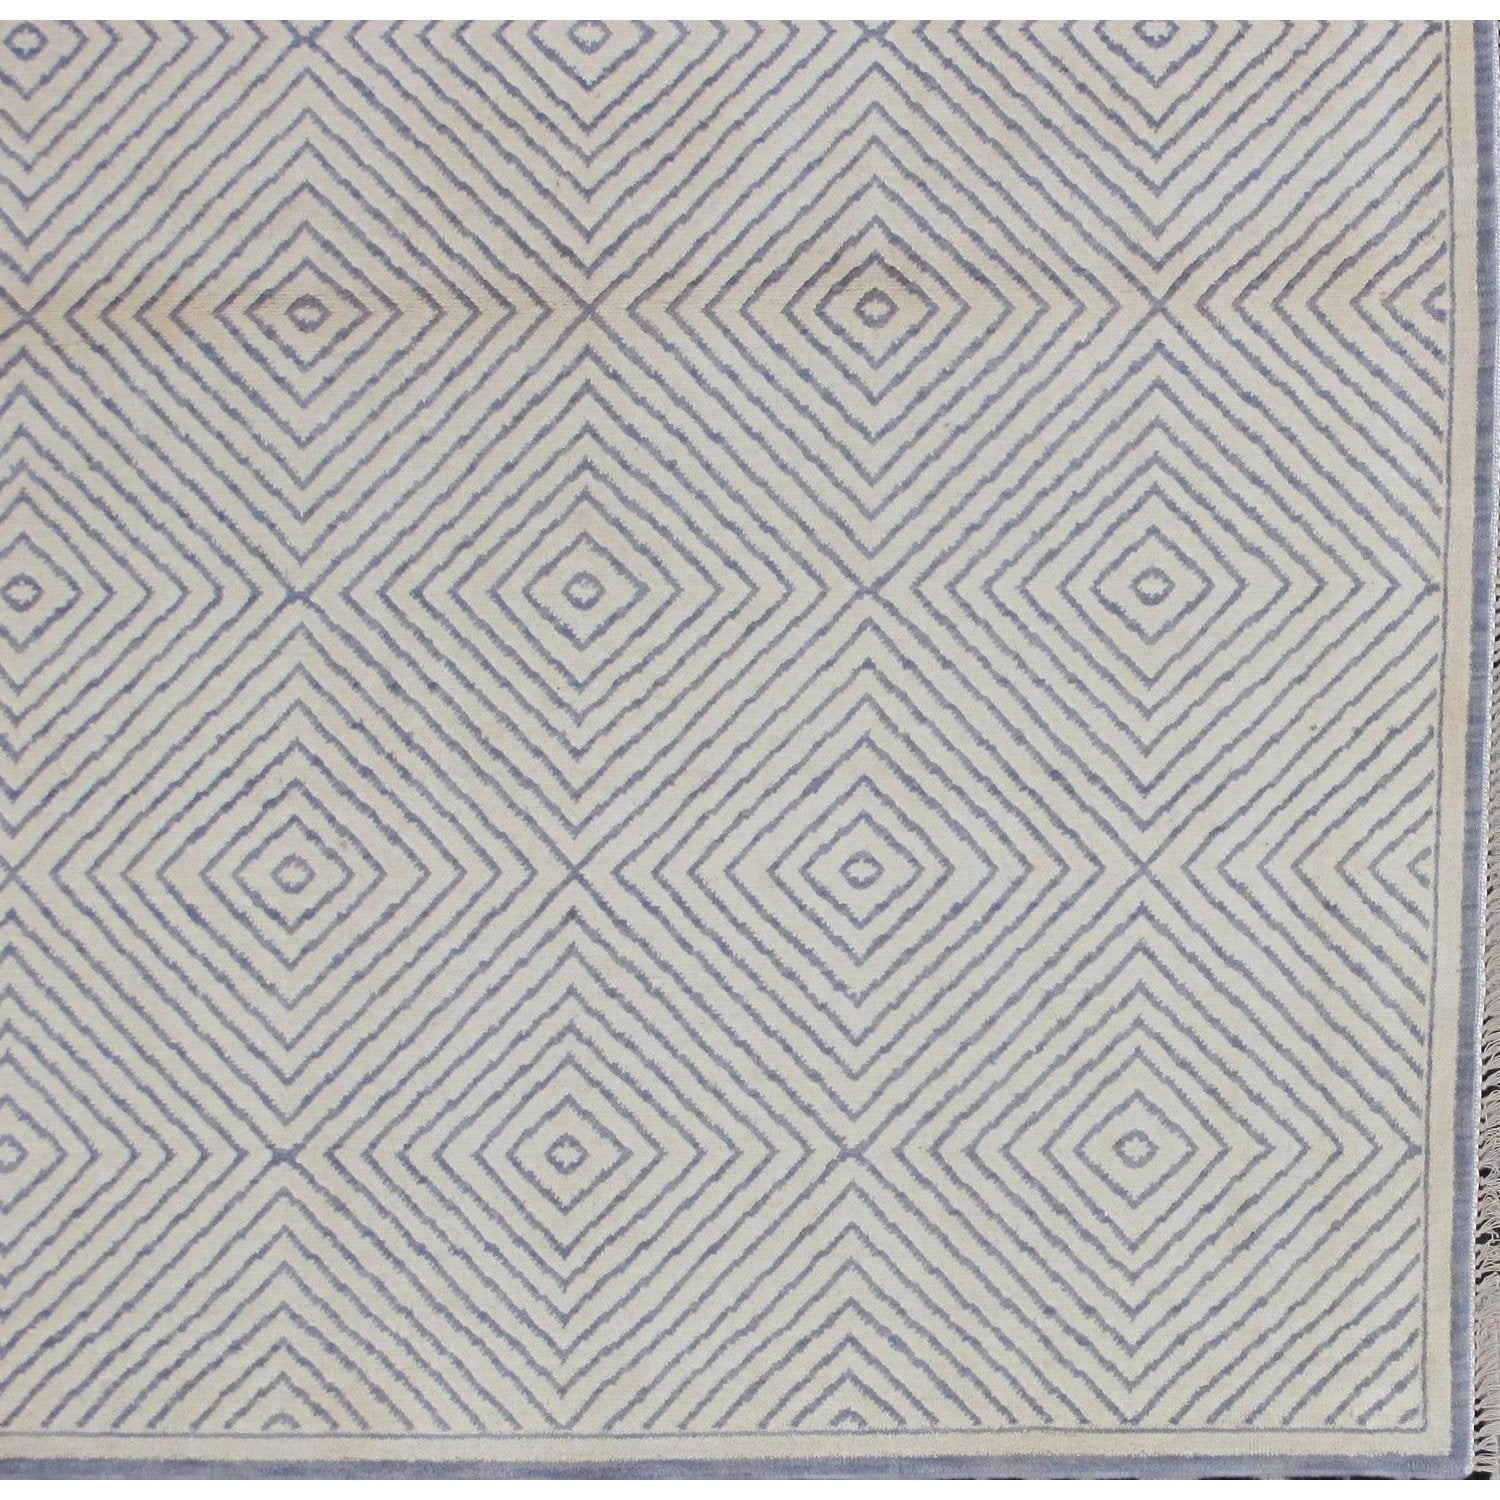 Soumak Design Hand Woven Gay Wool Rug - 6' X 9'